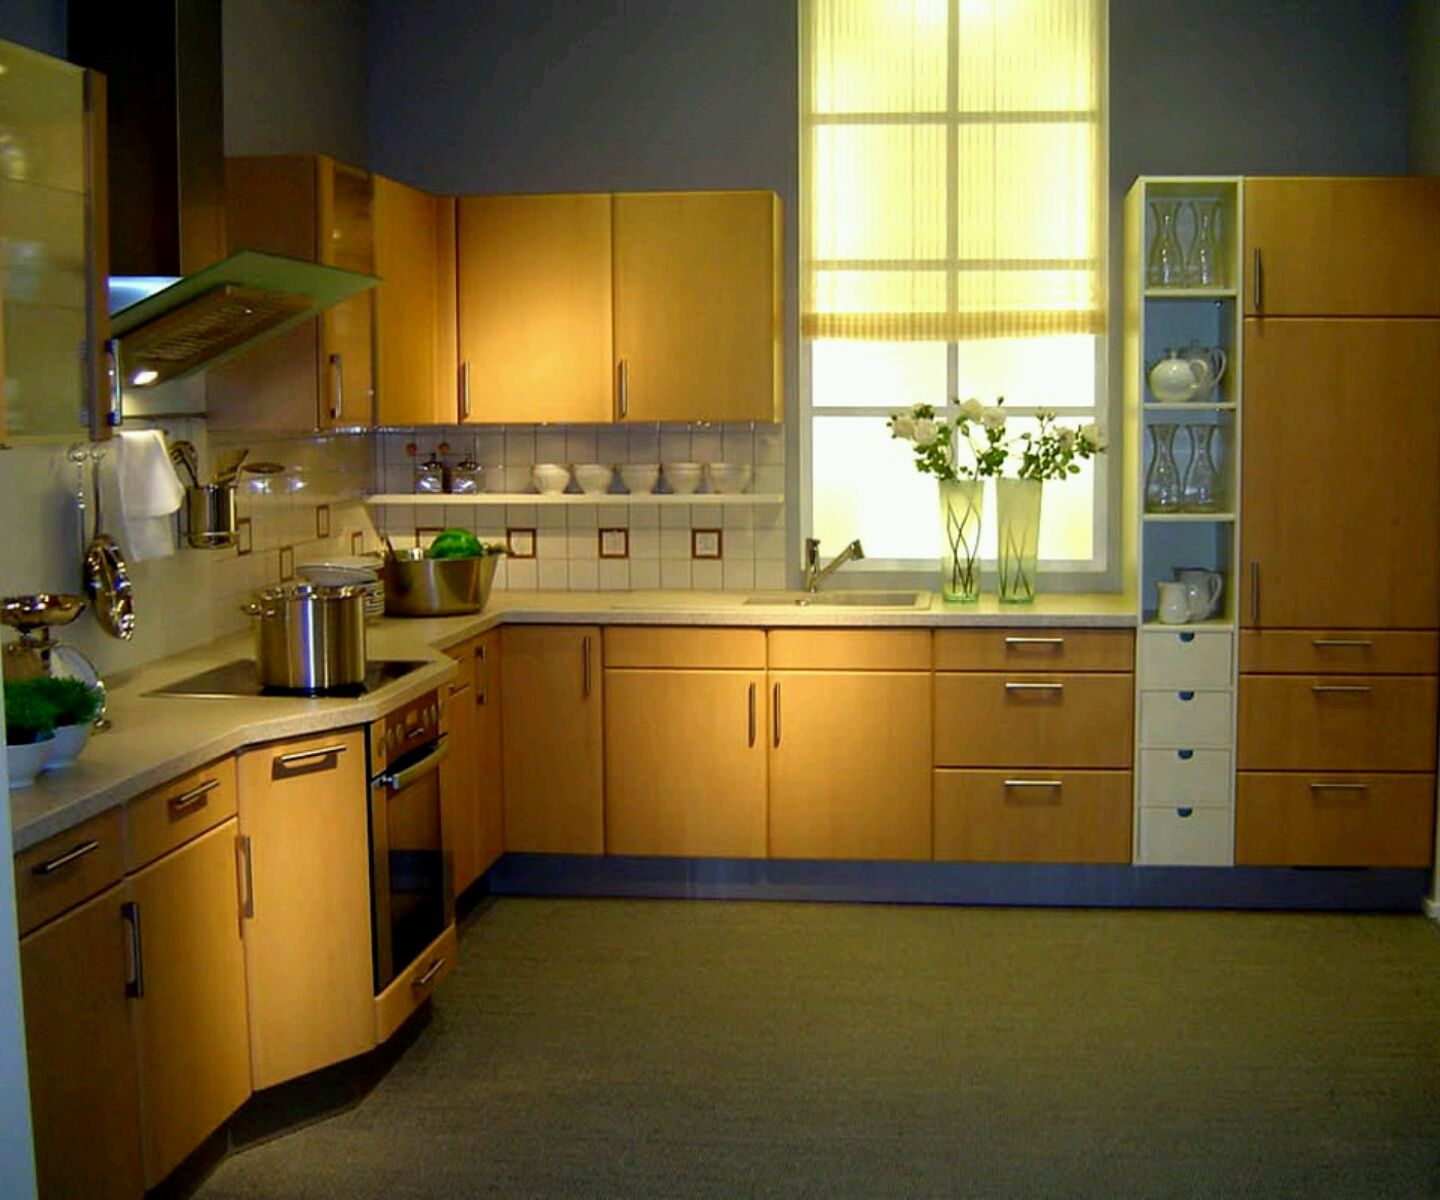 Low Budget Kitchen Cabinets: Pin By BuyMyVA House On Modern Cabinet Design In Dining